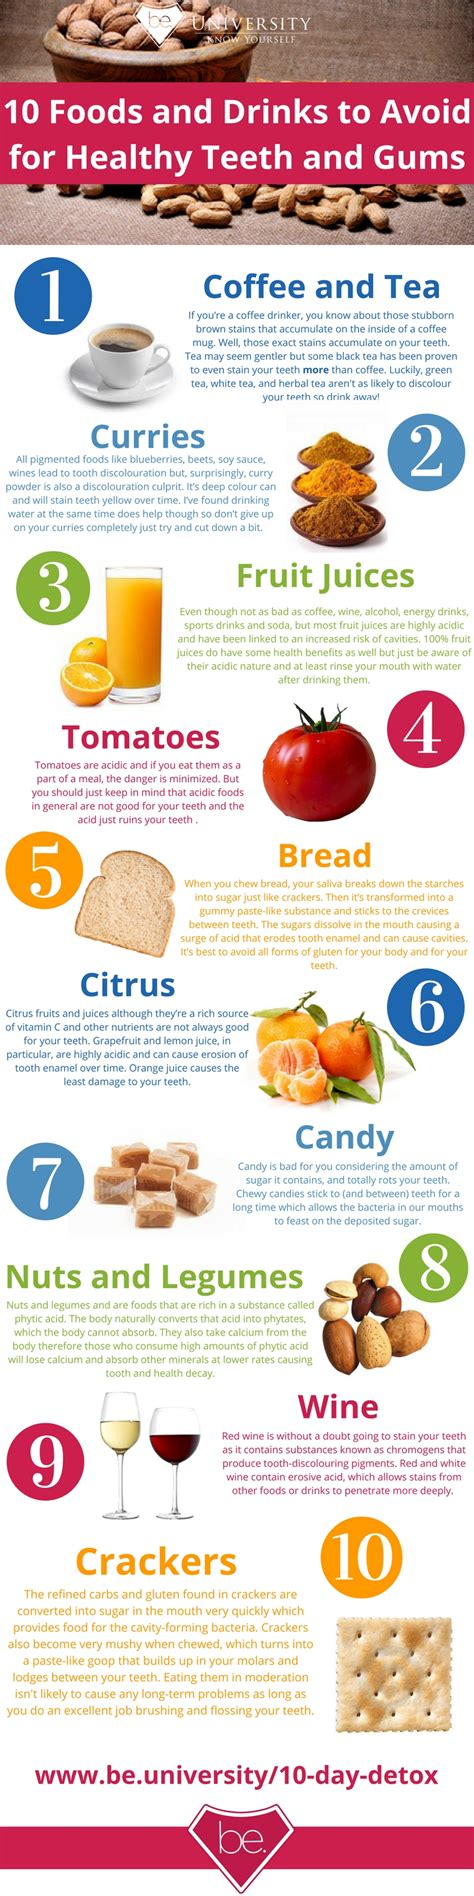 foods for 10 foods and drinks to avoid for healthy teeth and gums